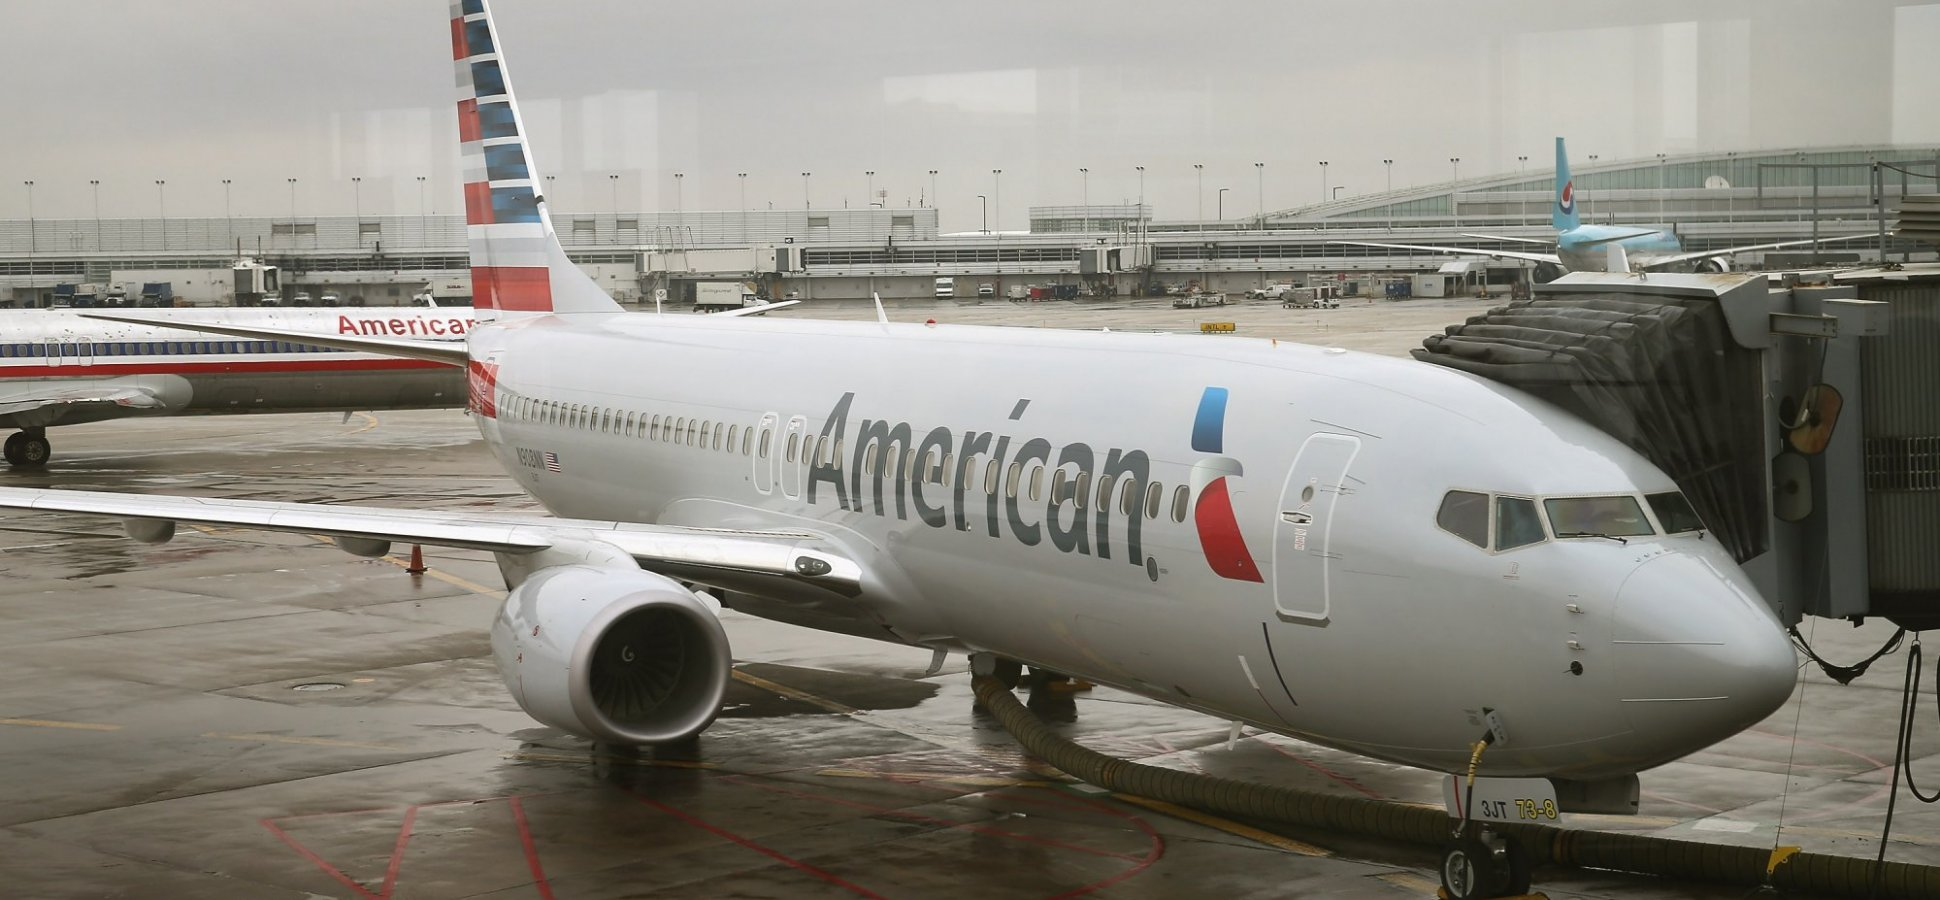 American Airlines Customers Just Got Some Really Bad News (It's Not Good For Southwest Either)